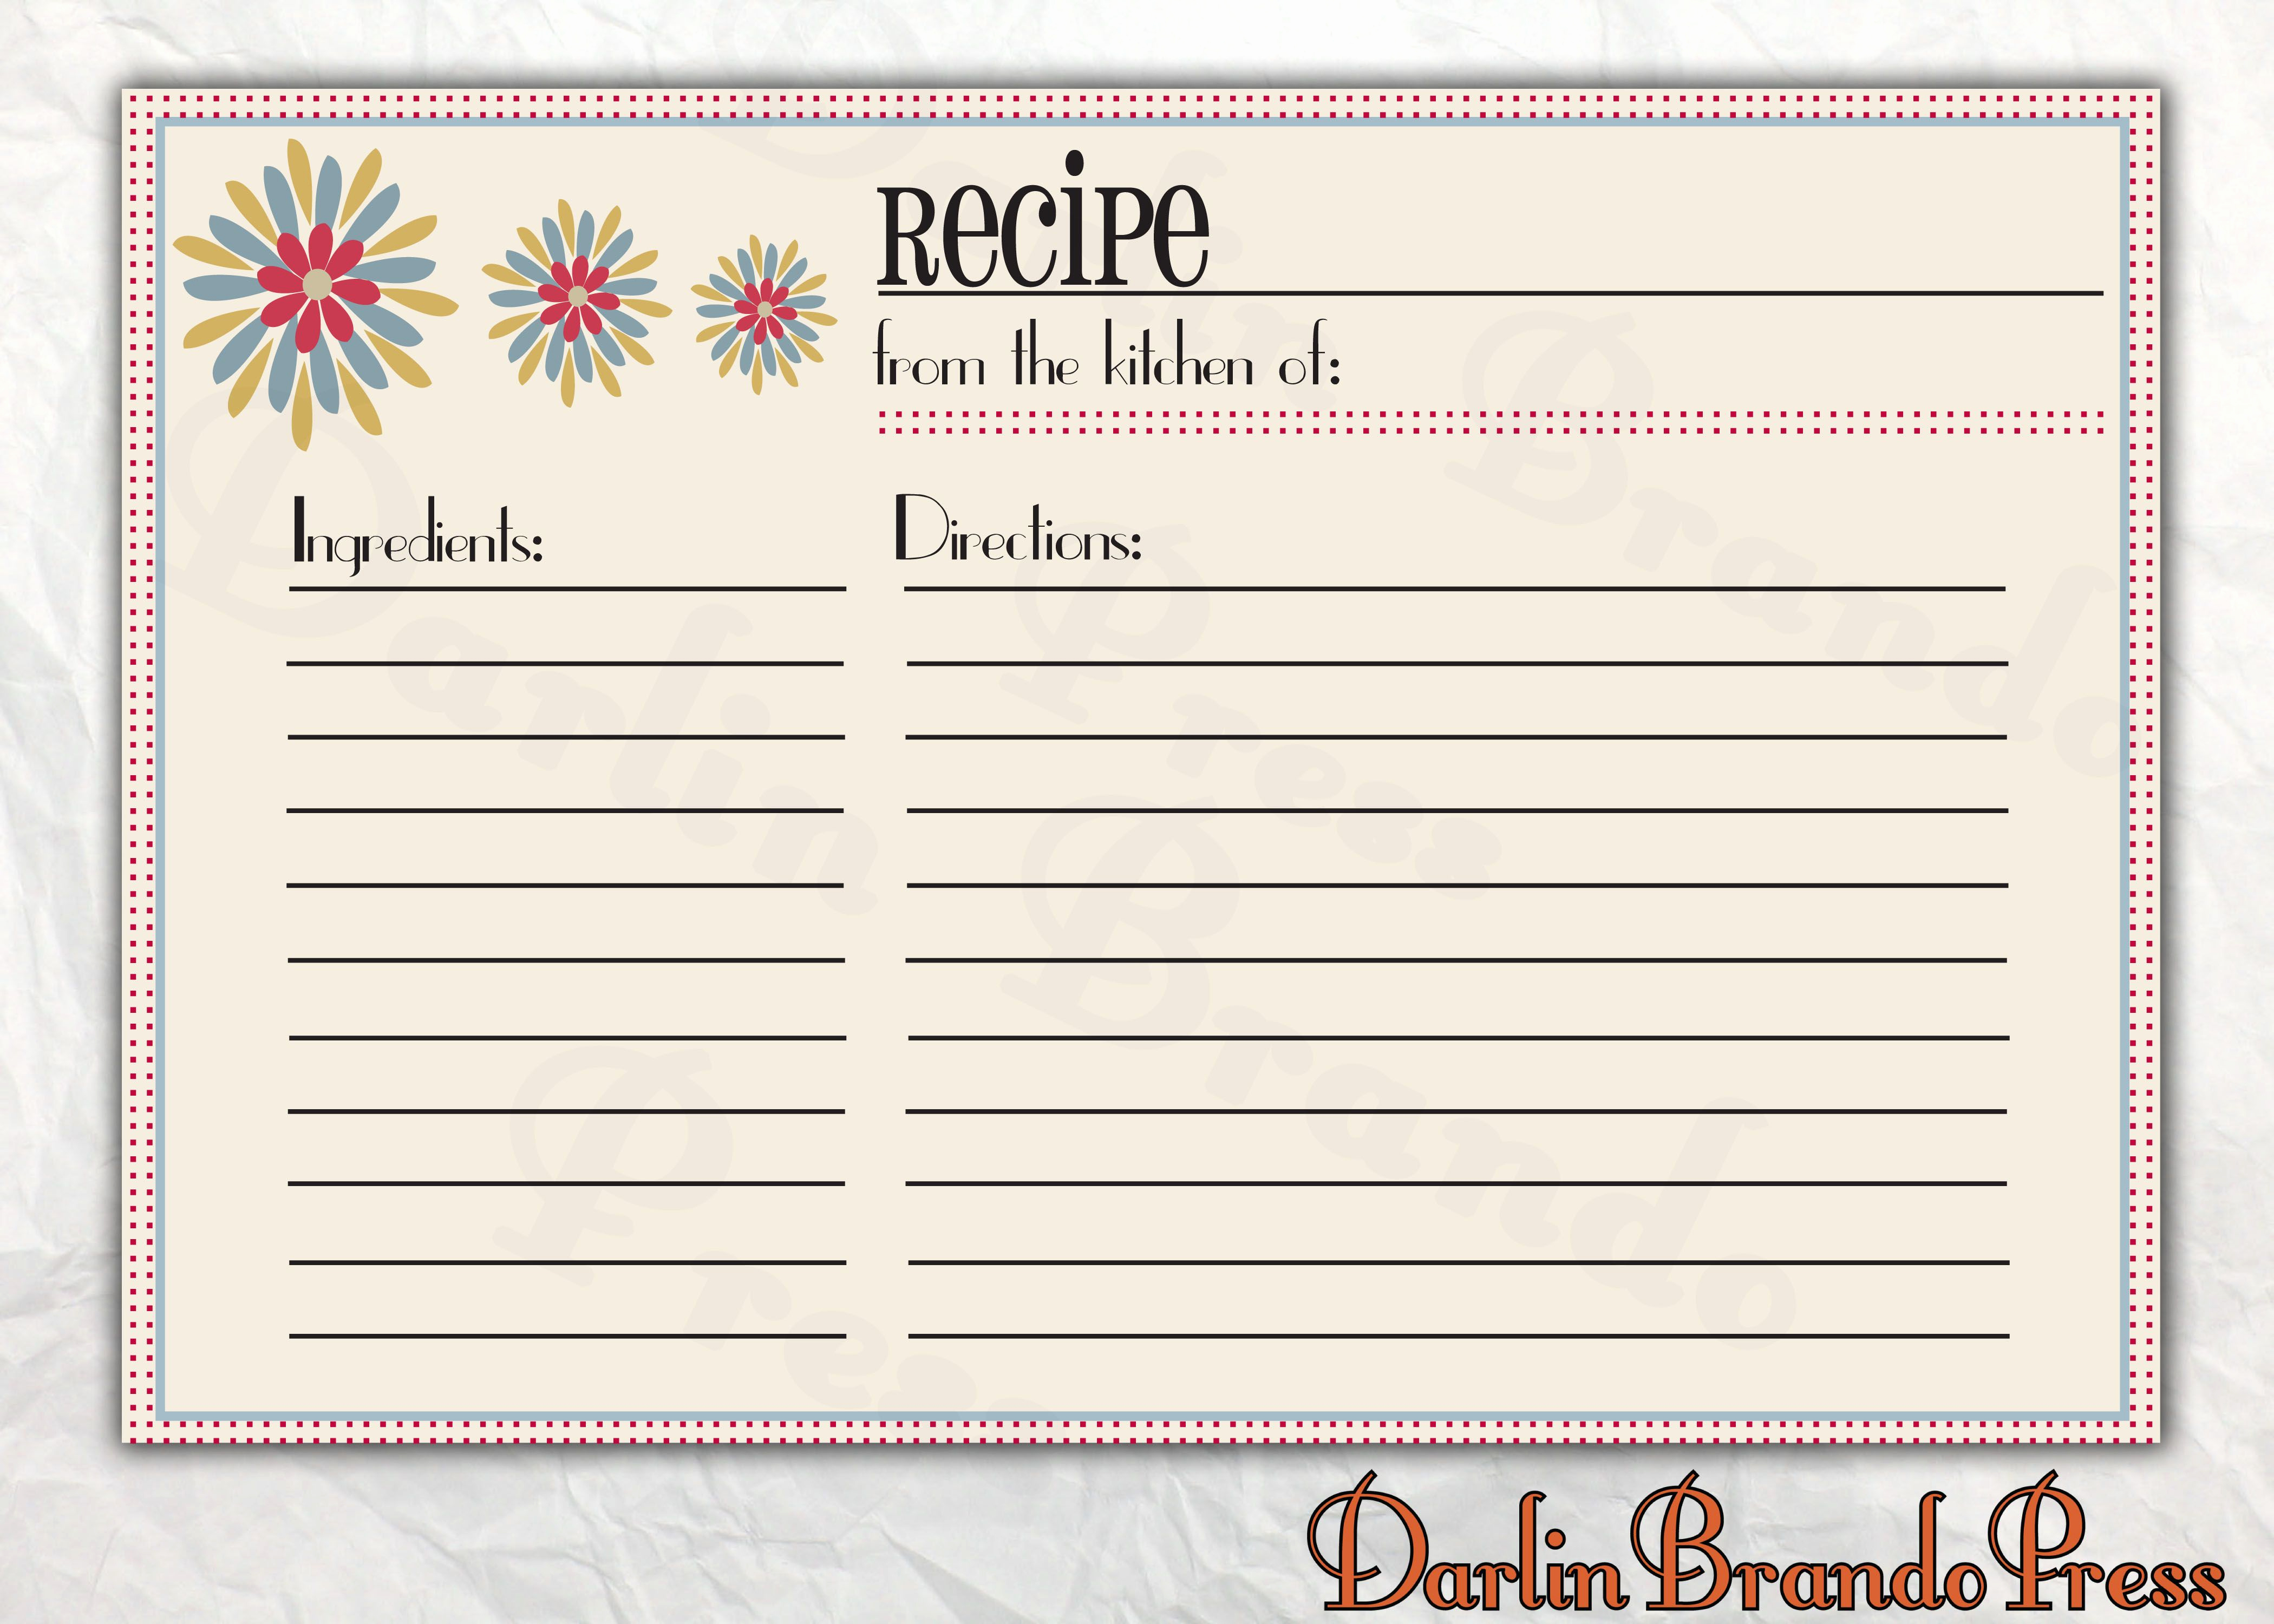 Recipe Card Templates for Word Elegant Recipes Card Templates Word Cooking Baking